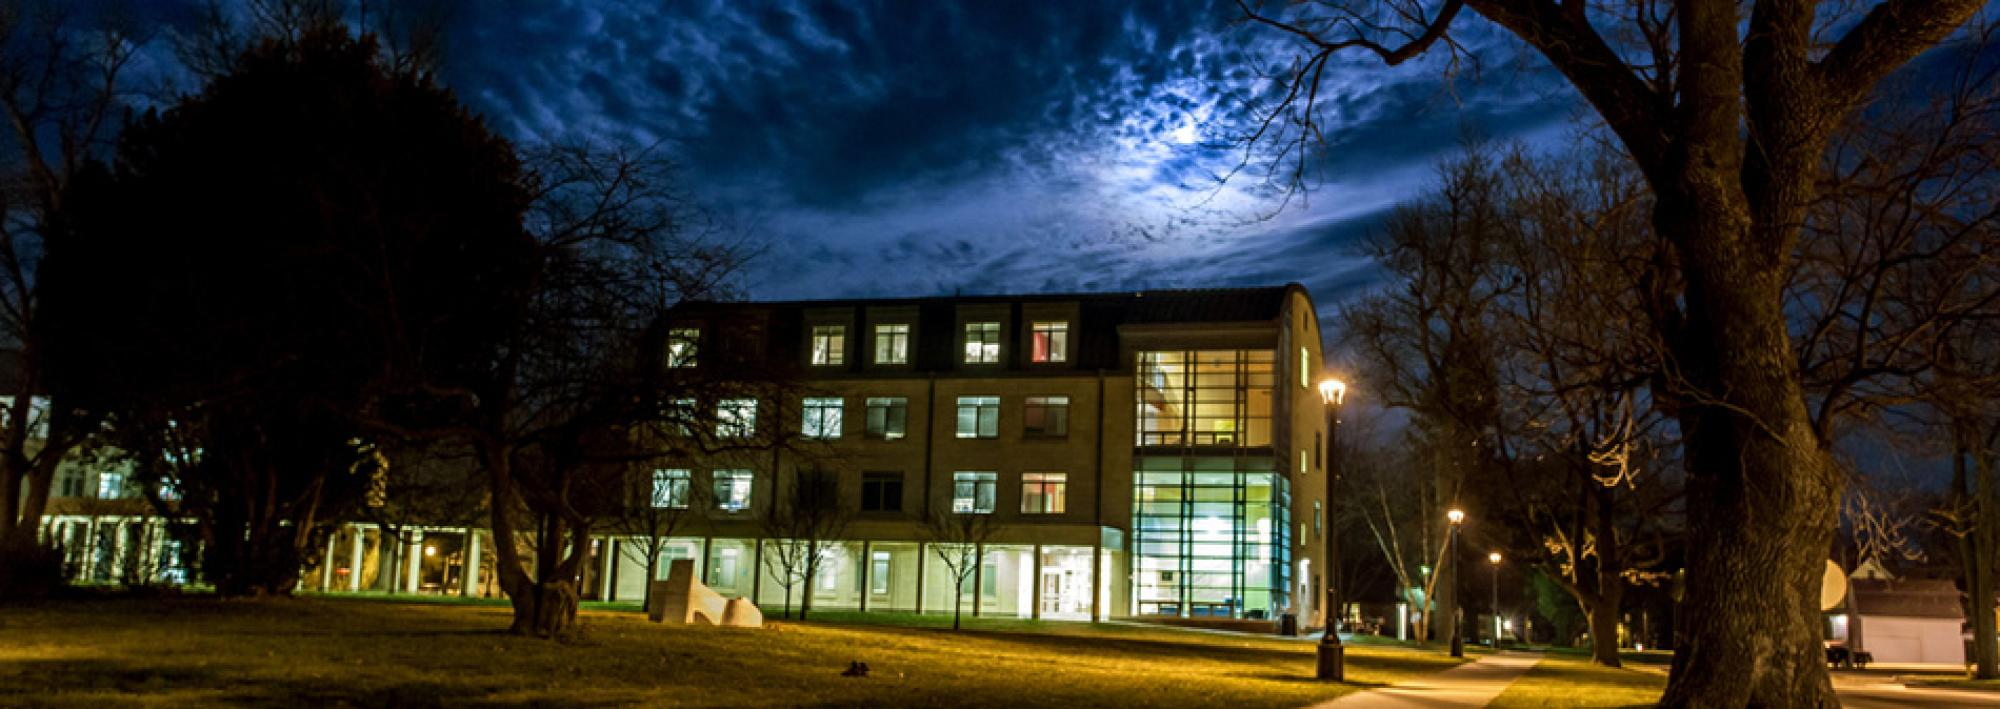 East campus at night